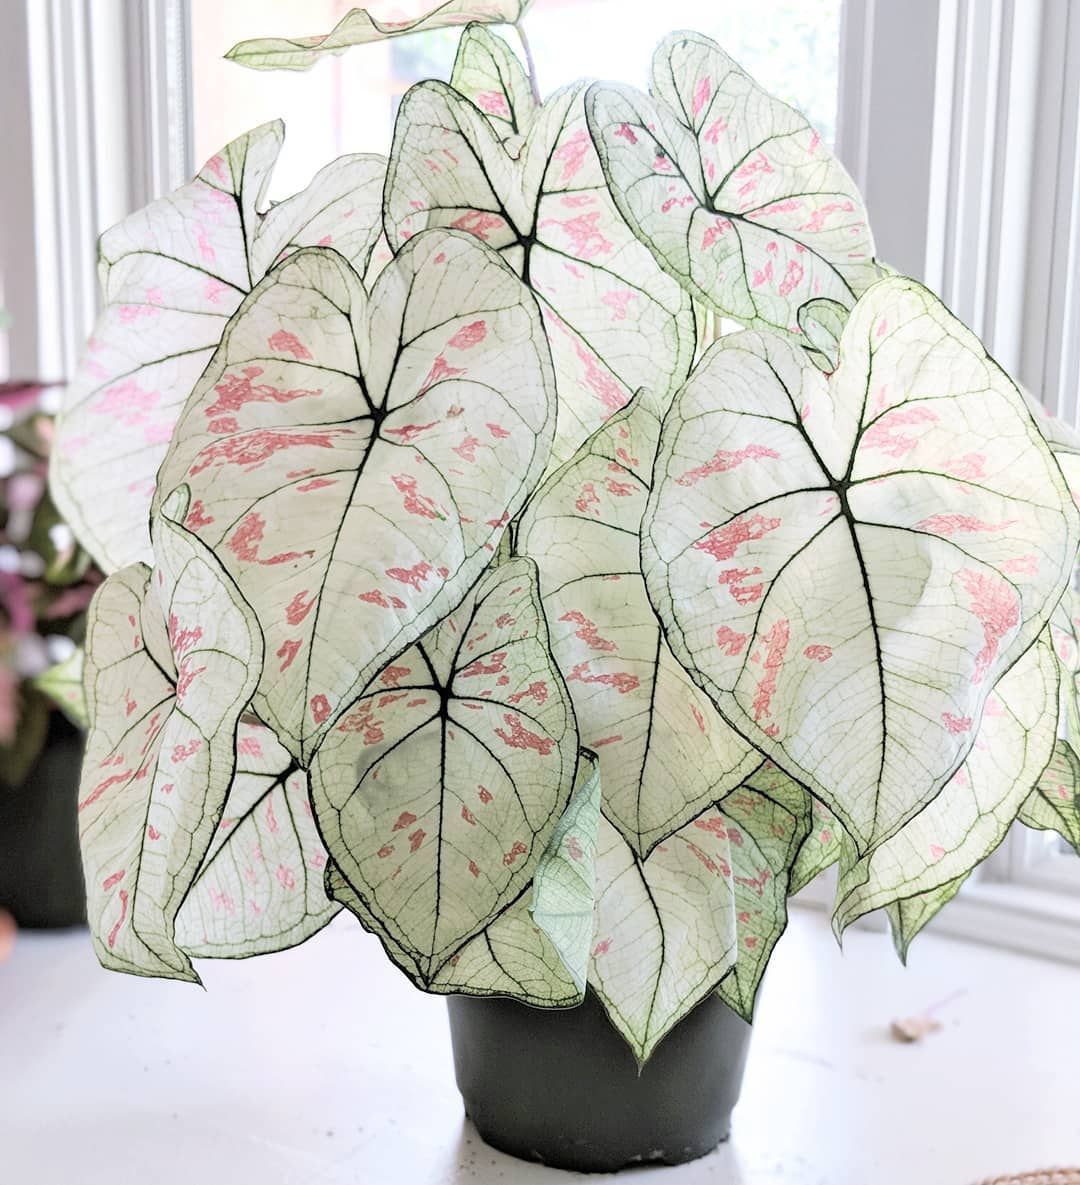 caladium | Grow your own way | Plants, House Plants ...